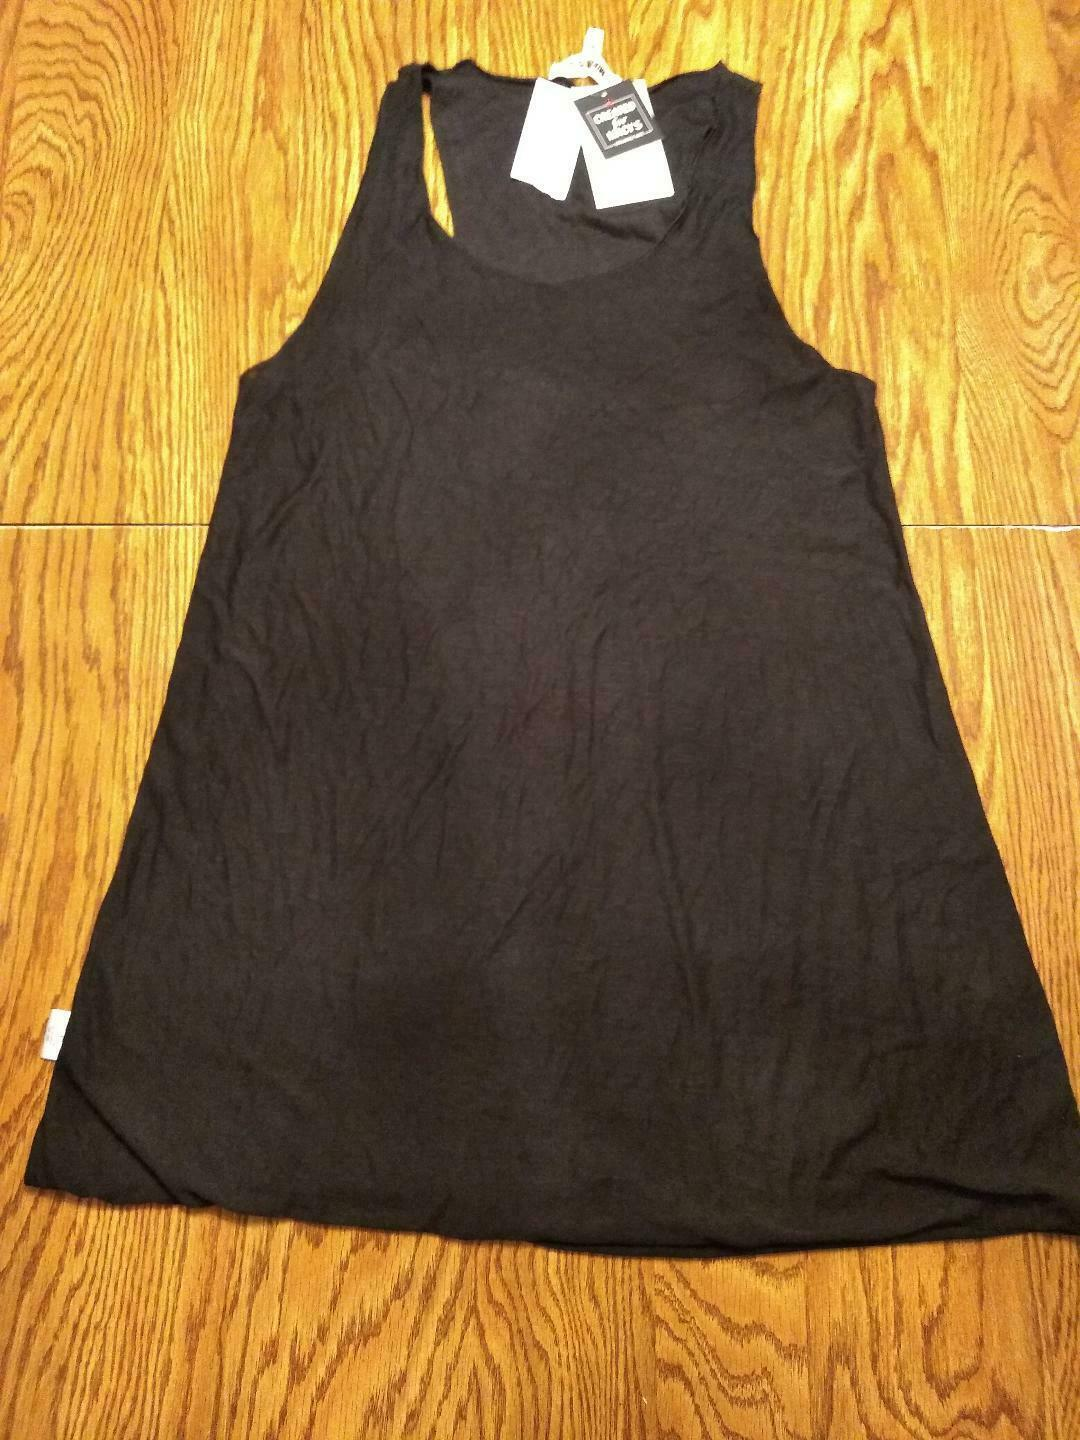 Miken Swim Black Beach Cover Up Size Small